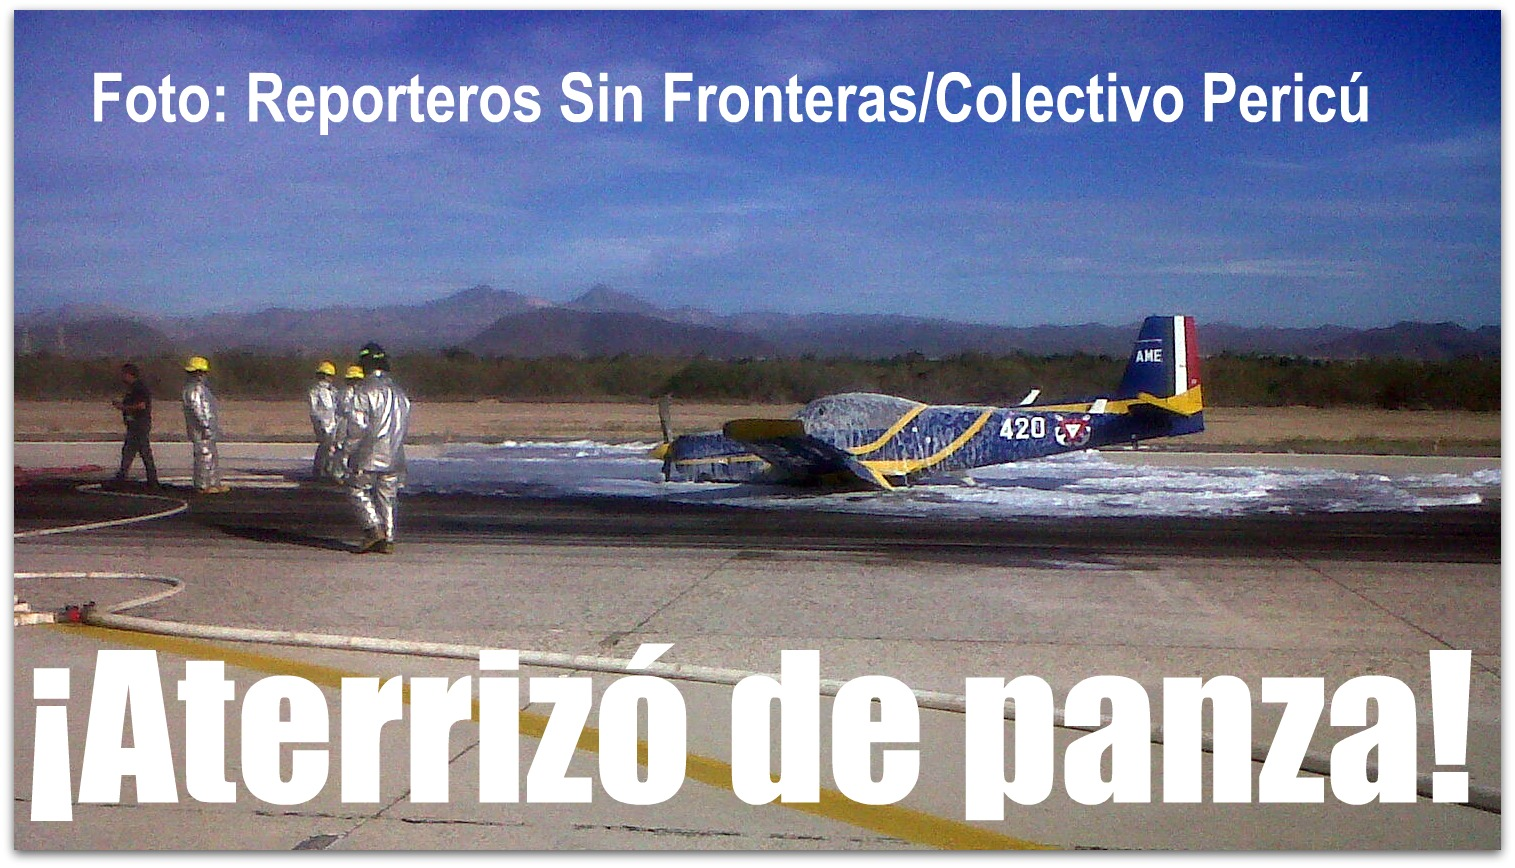 Accidentes de Aeronaves de la SEMAR. Noticias,comentarios,fotos,videos.  Avion-aeropuerto-de-la-paz